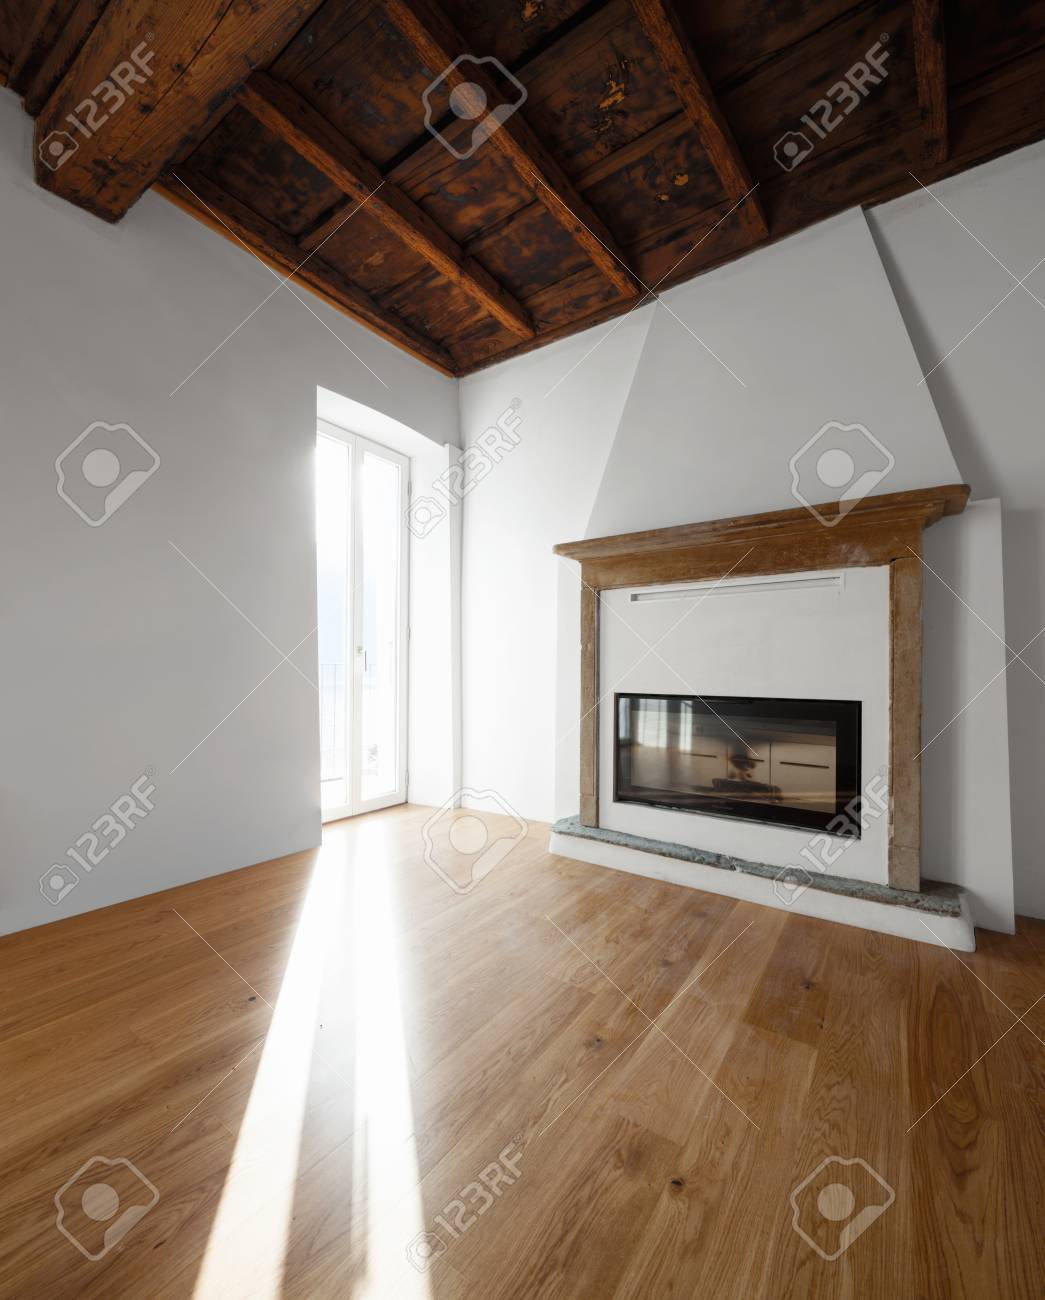 Fireplace Beams Living Room With Windows Overlooking The Lake Fireplace Renovated